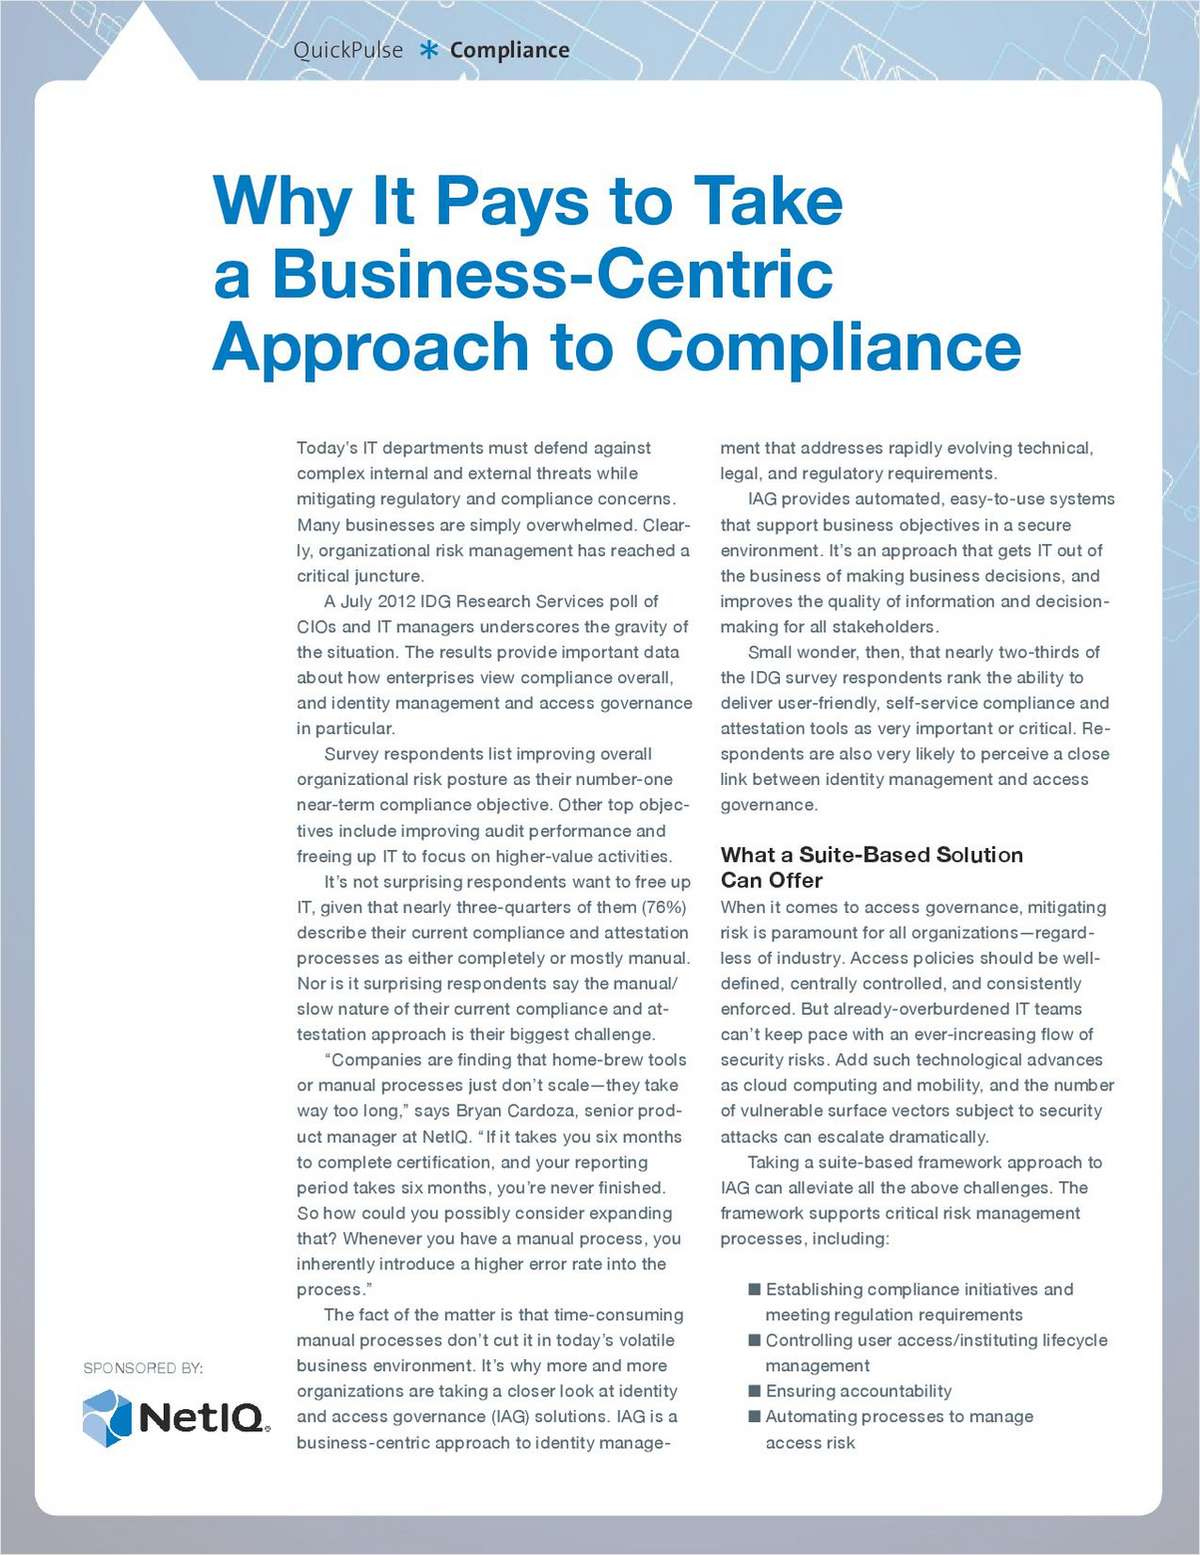 Why It Pays to Take a Business-Centric Approach to Compliance